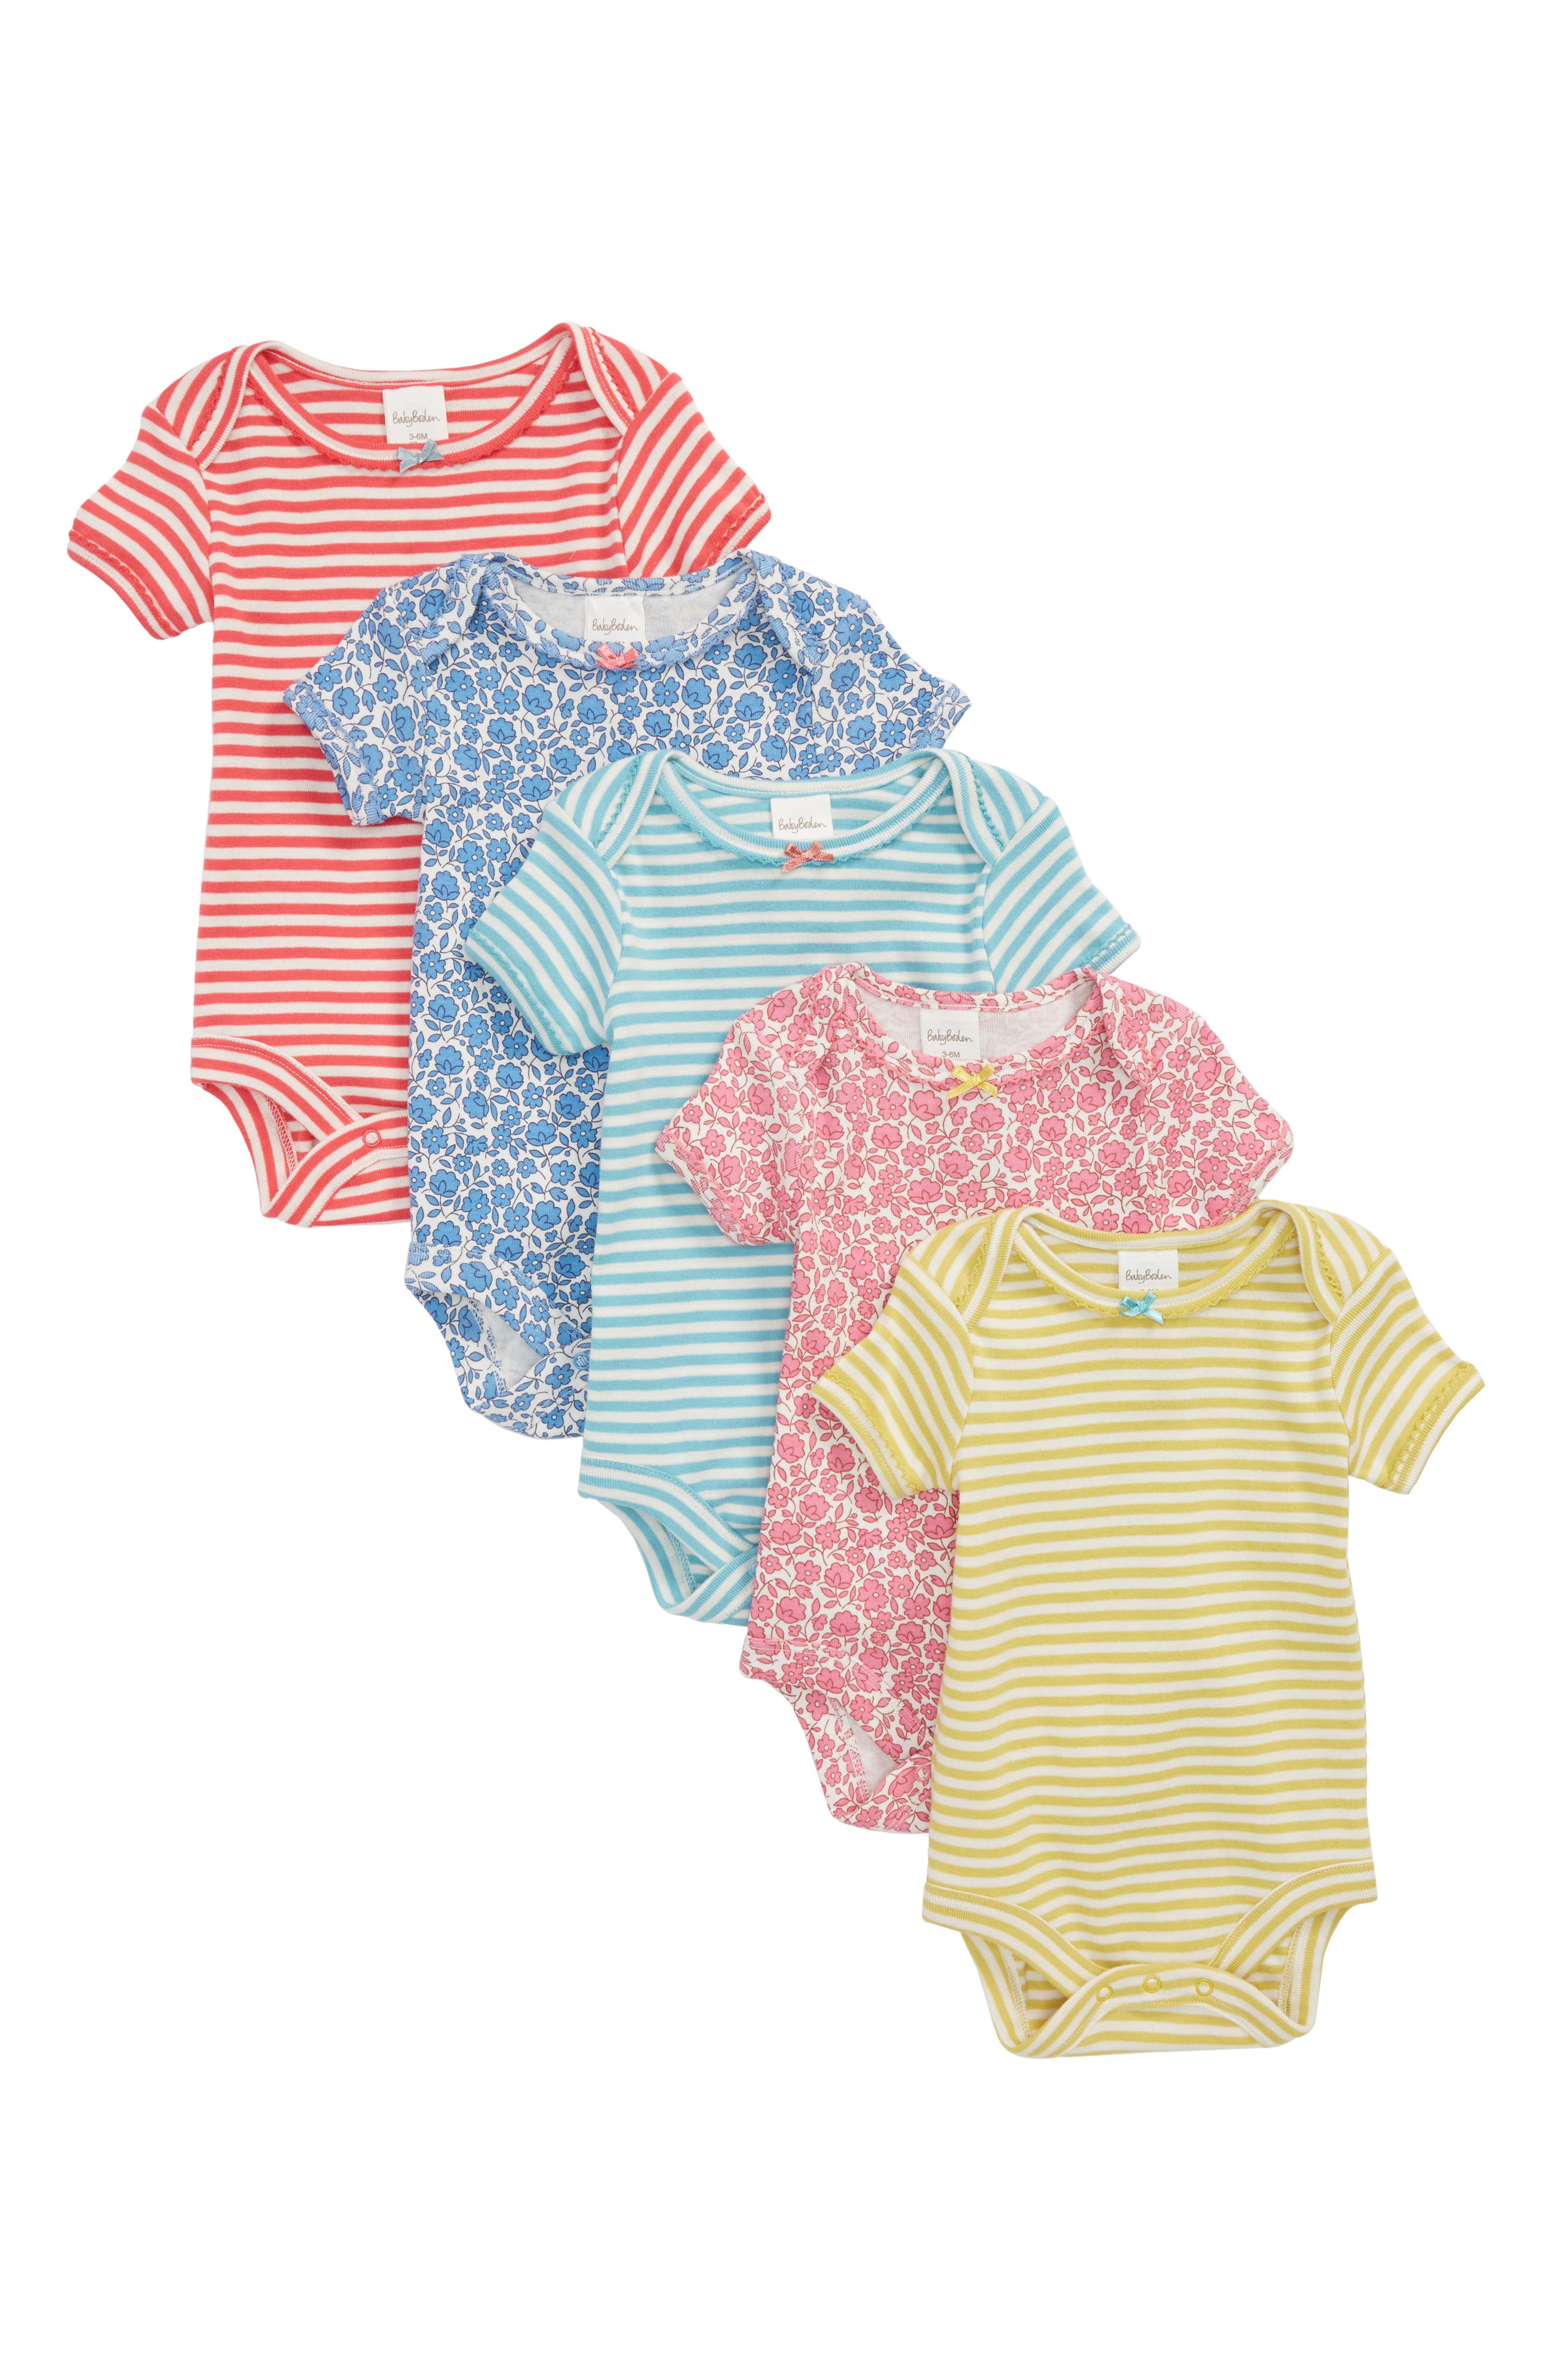 5-Pack Assorted Bodysuits,                         Main,                         color, 691